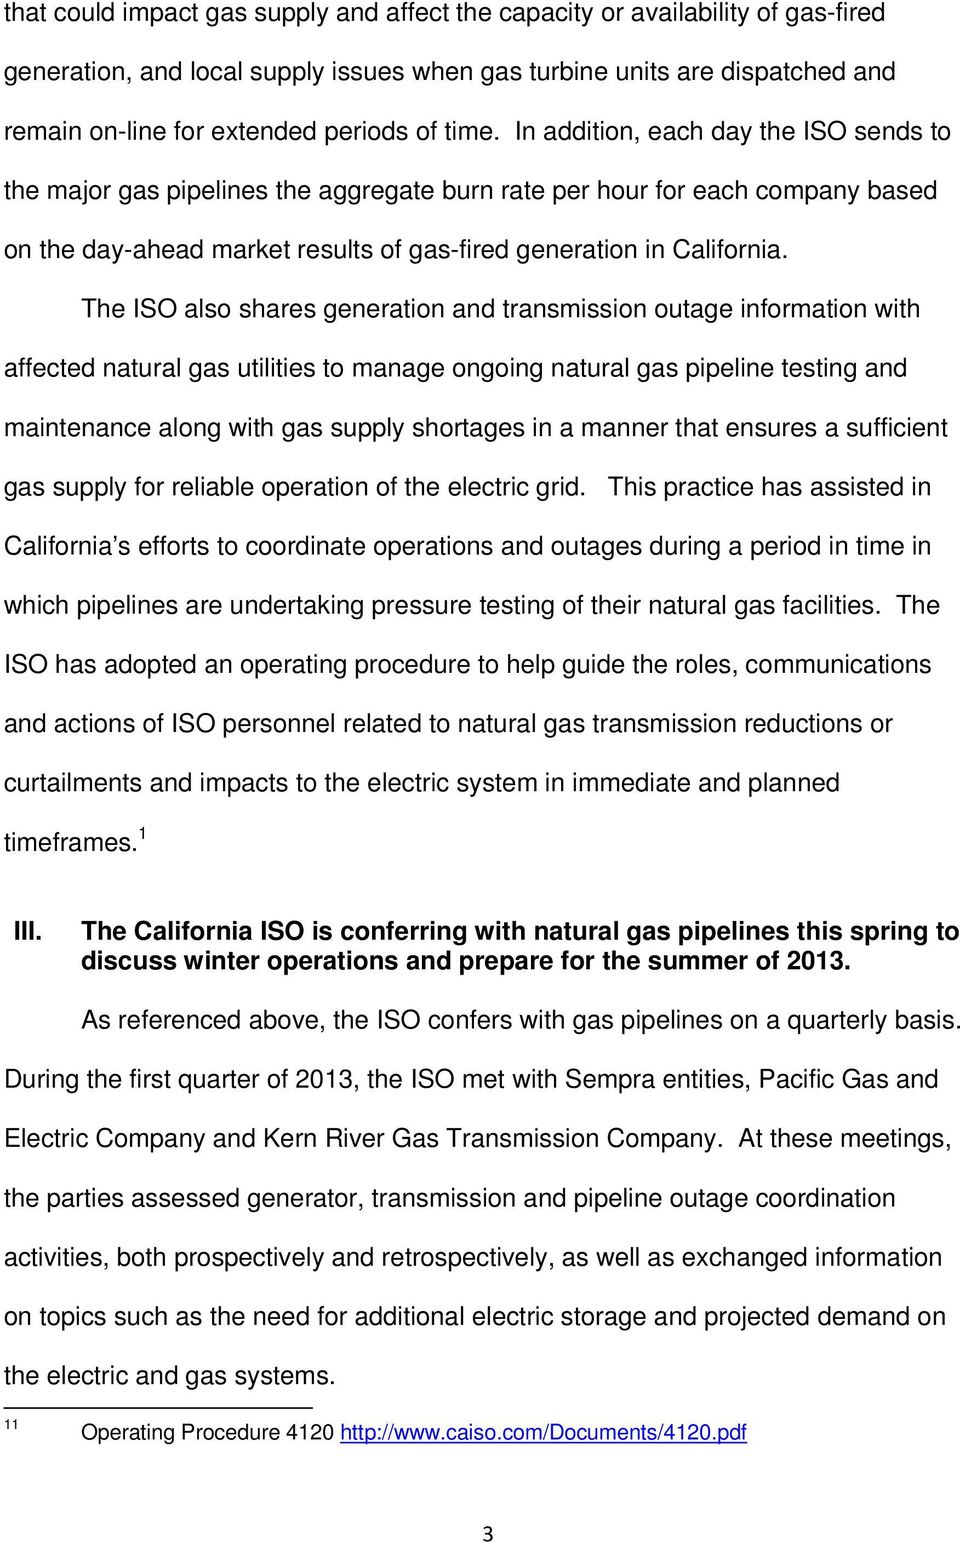 The ISO also shares generation and transmission outage information with affected natural gas utilities to manage ongoing natural gas pipeline testing and maintenance along with gas supply shortages